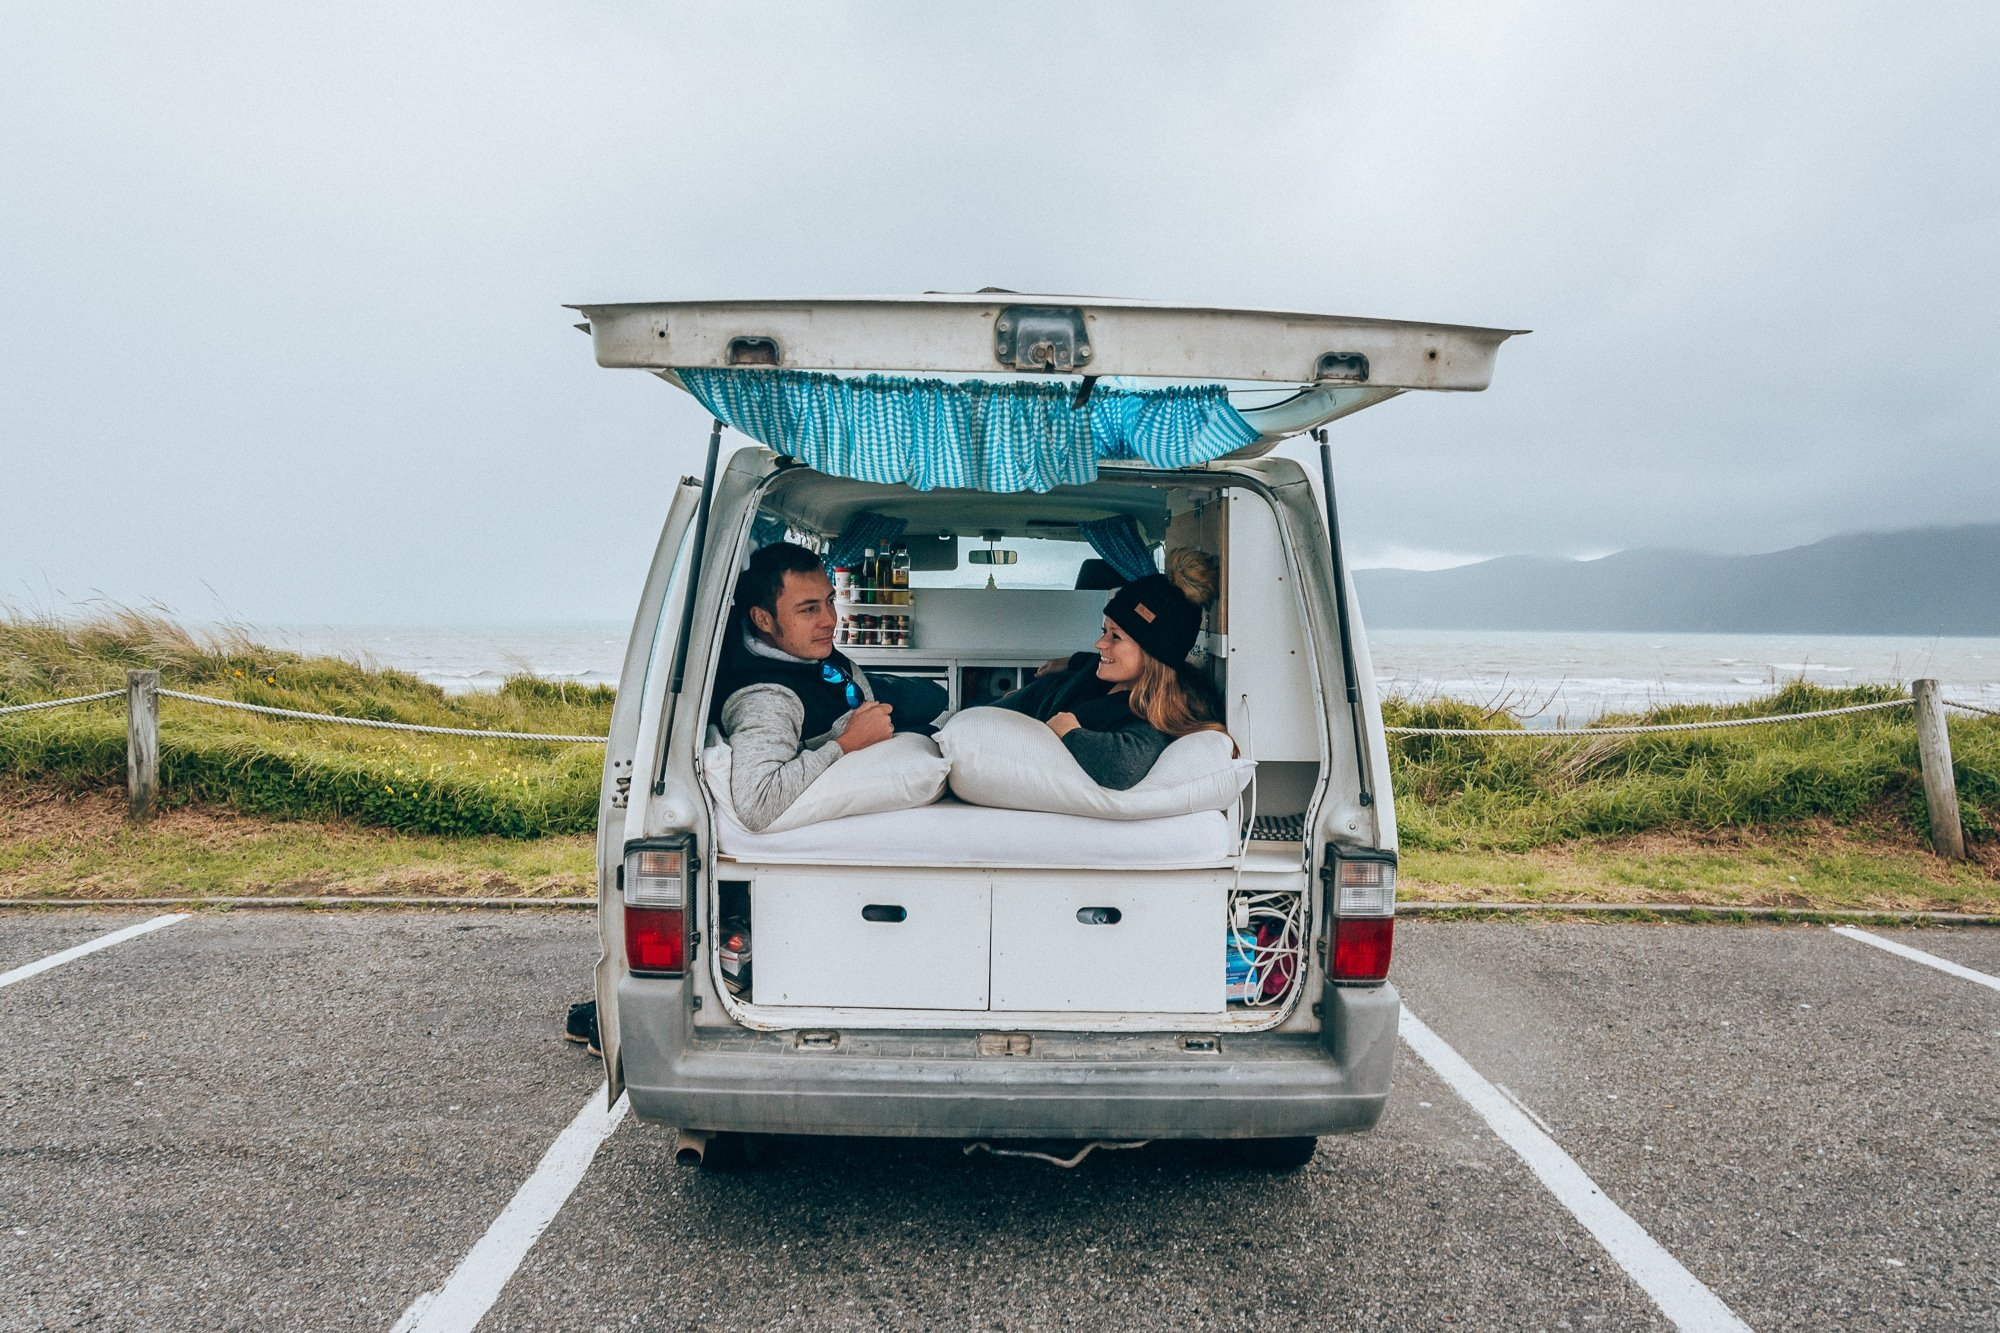 How to Build Your Own Campervan From Scratch - A Step-By